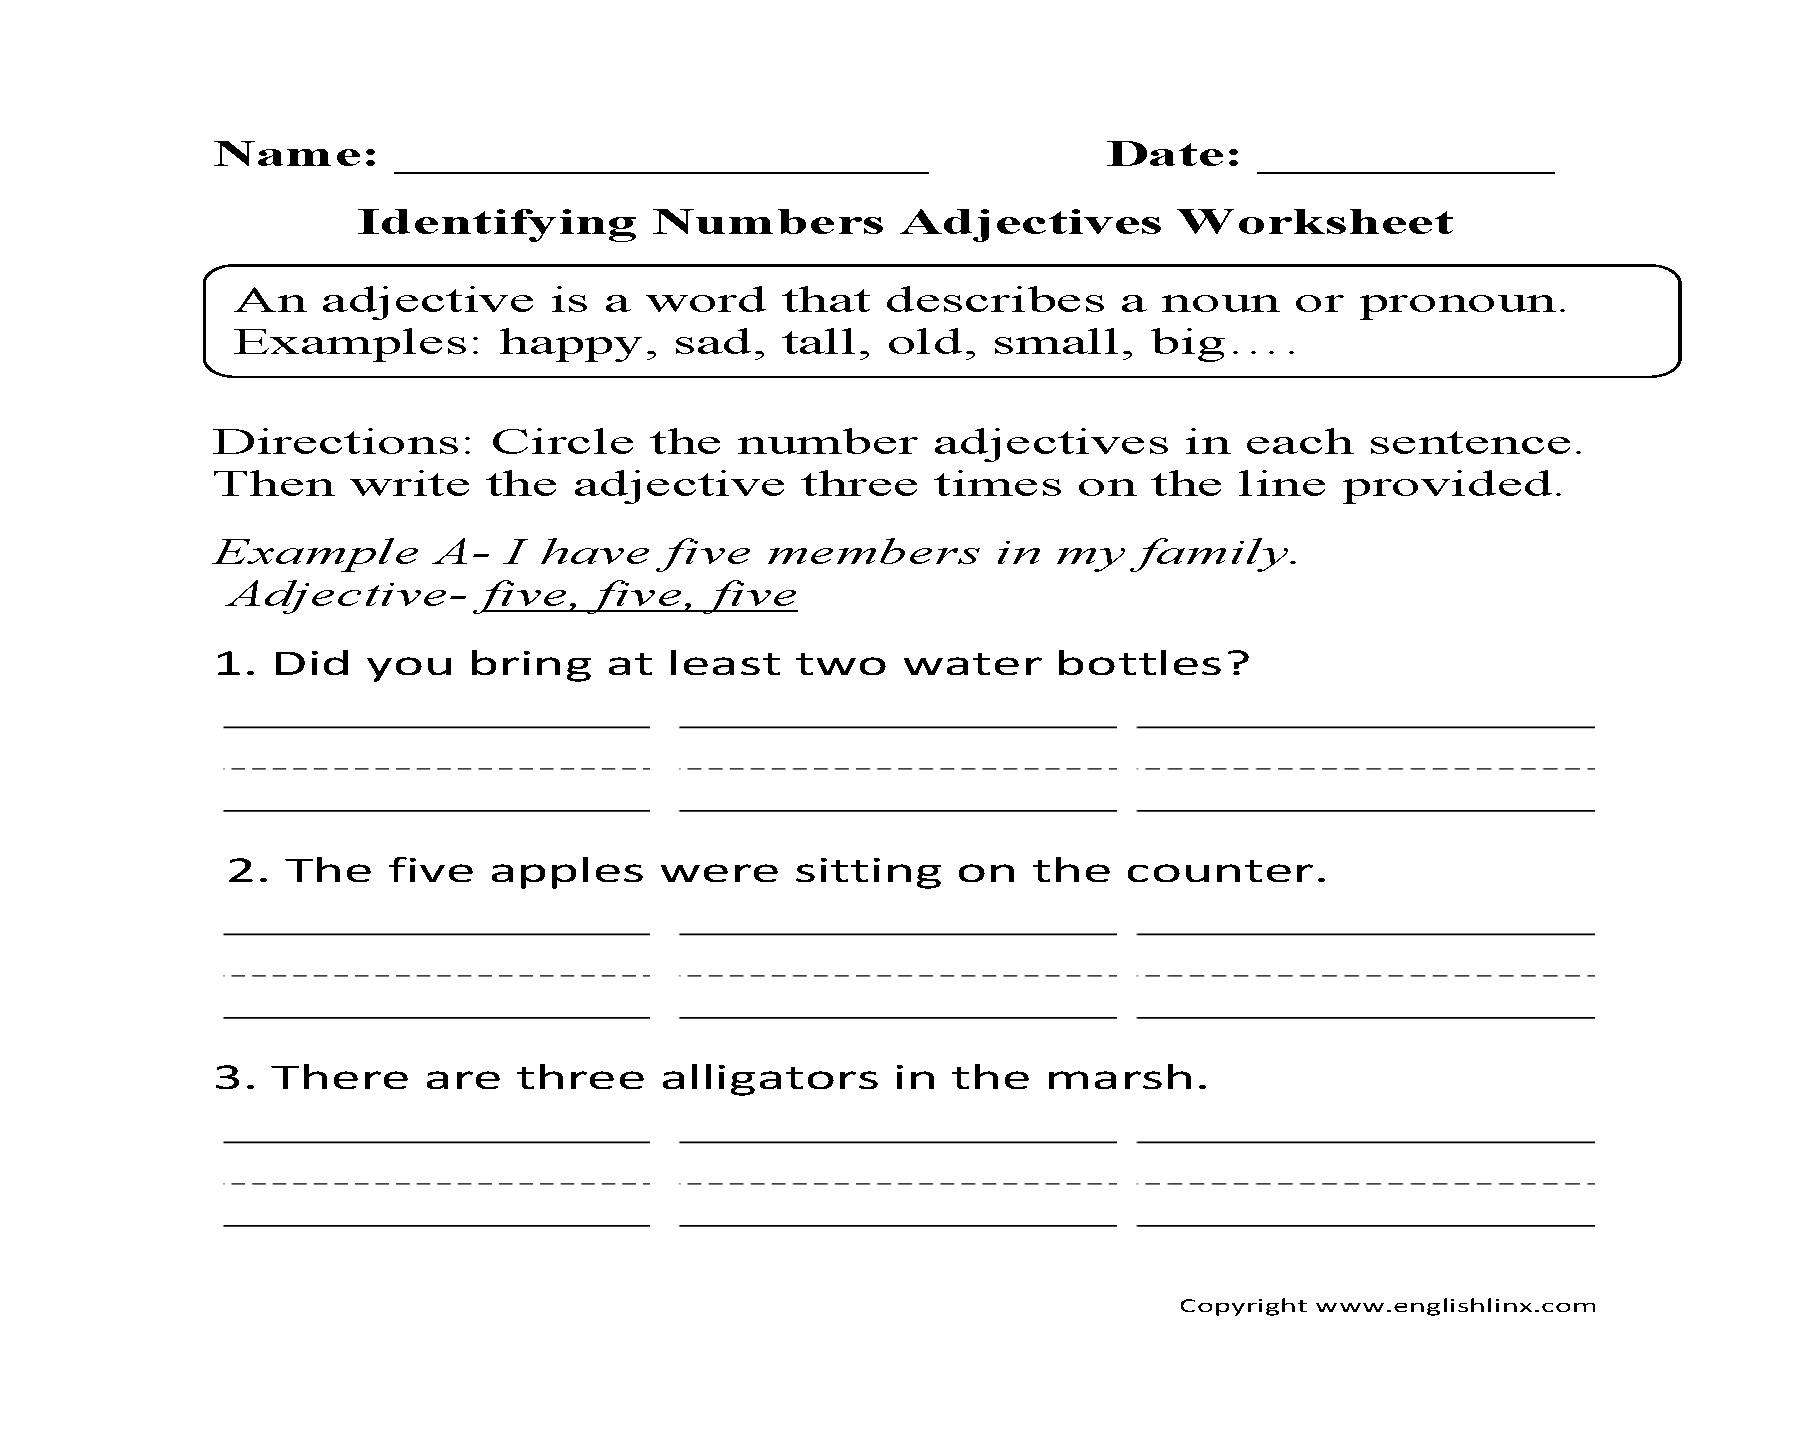 Worksheet Adjectives Worksheet Grade 5 adjectives worksheets regular grades k 5 worksheets